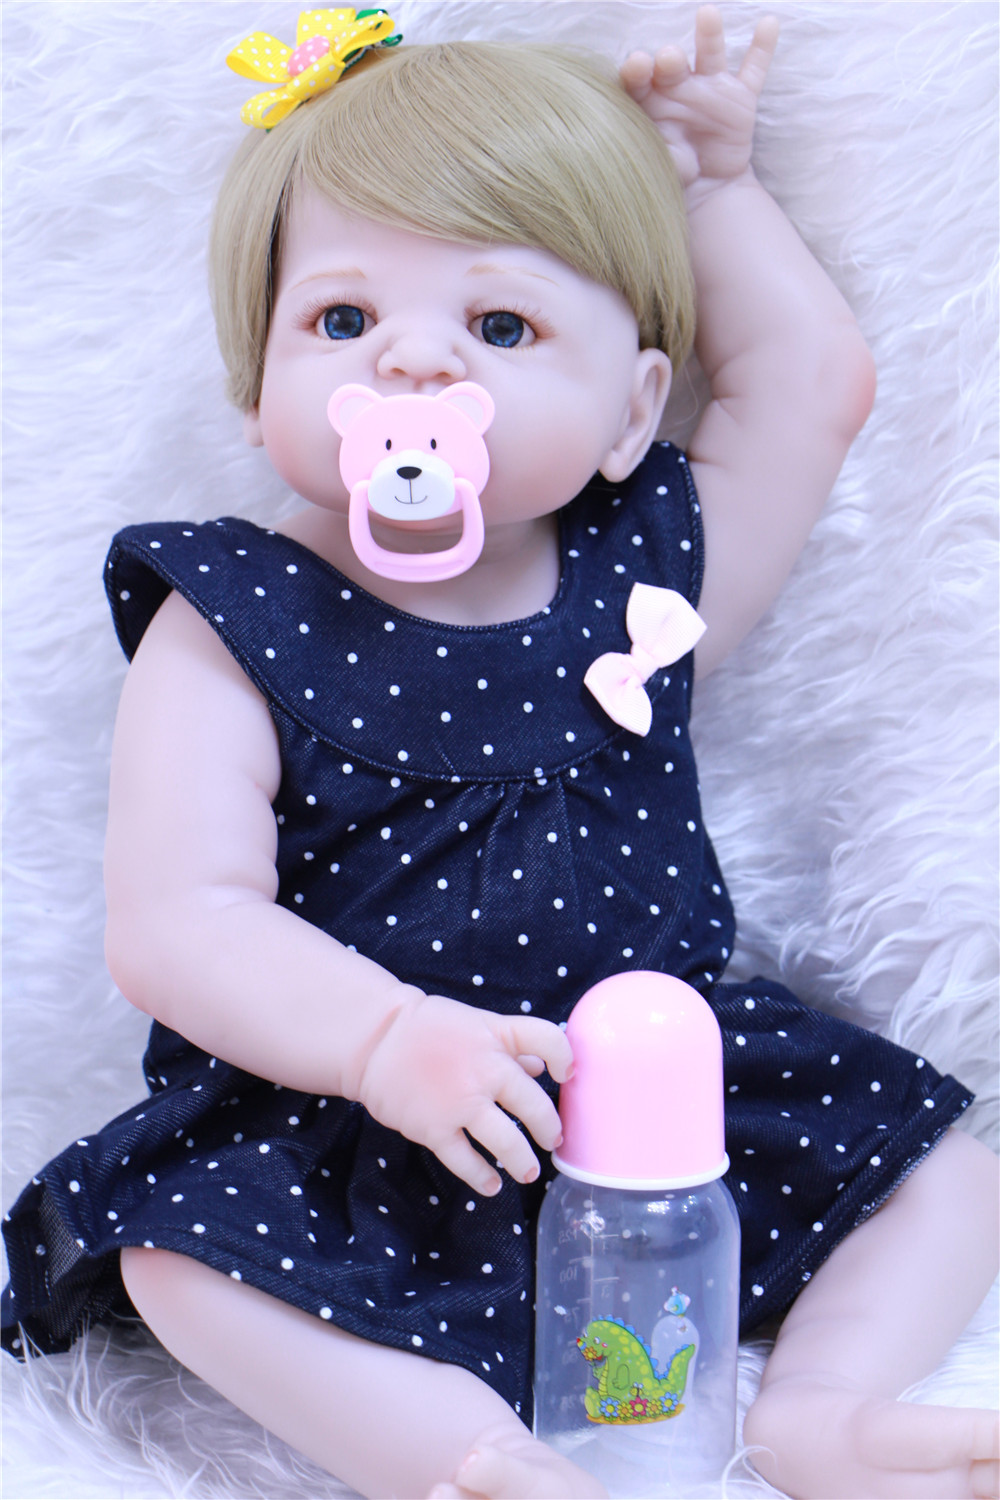 Baby Alive Real As Can Be Clothes Size : alive, clothes, DollMai, Reborn, Dolls, Silicone, Babies, Alive, Bonecas, Bebes, Menina, Doll|doll, Reborn|reborn, Dollgift, AliExpress